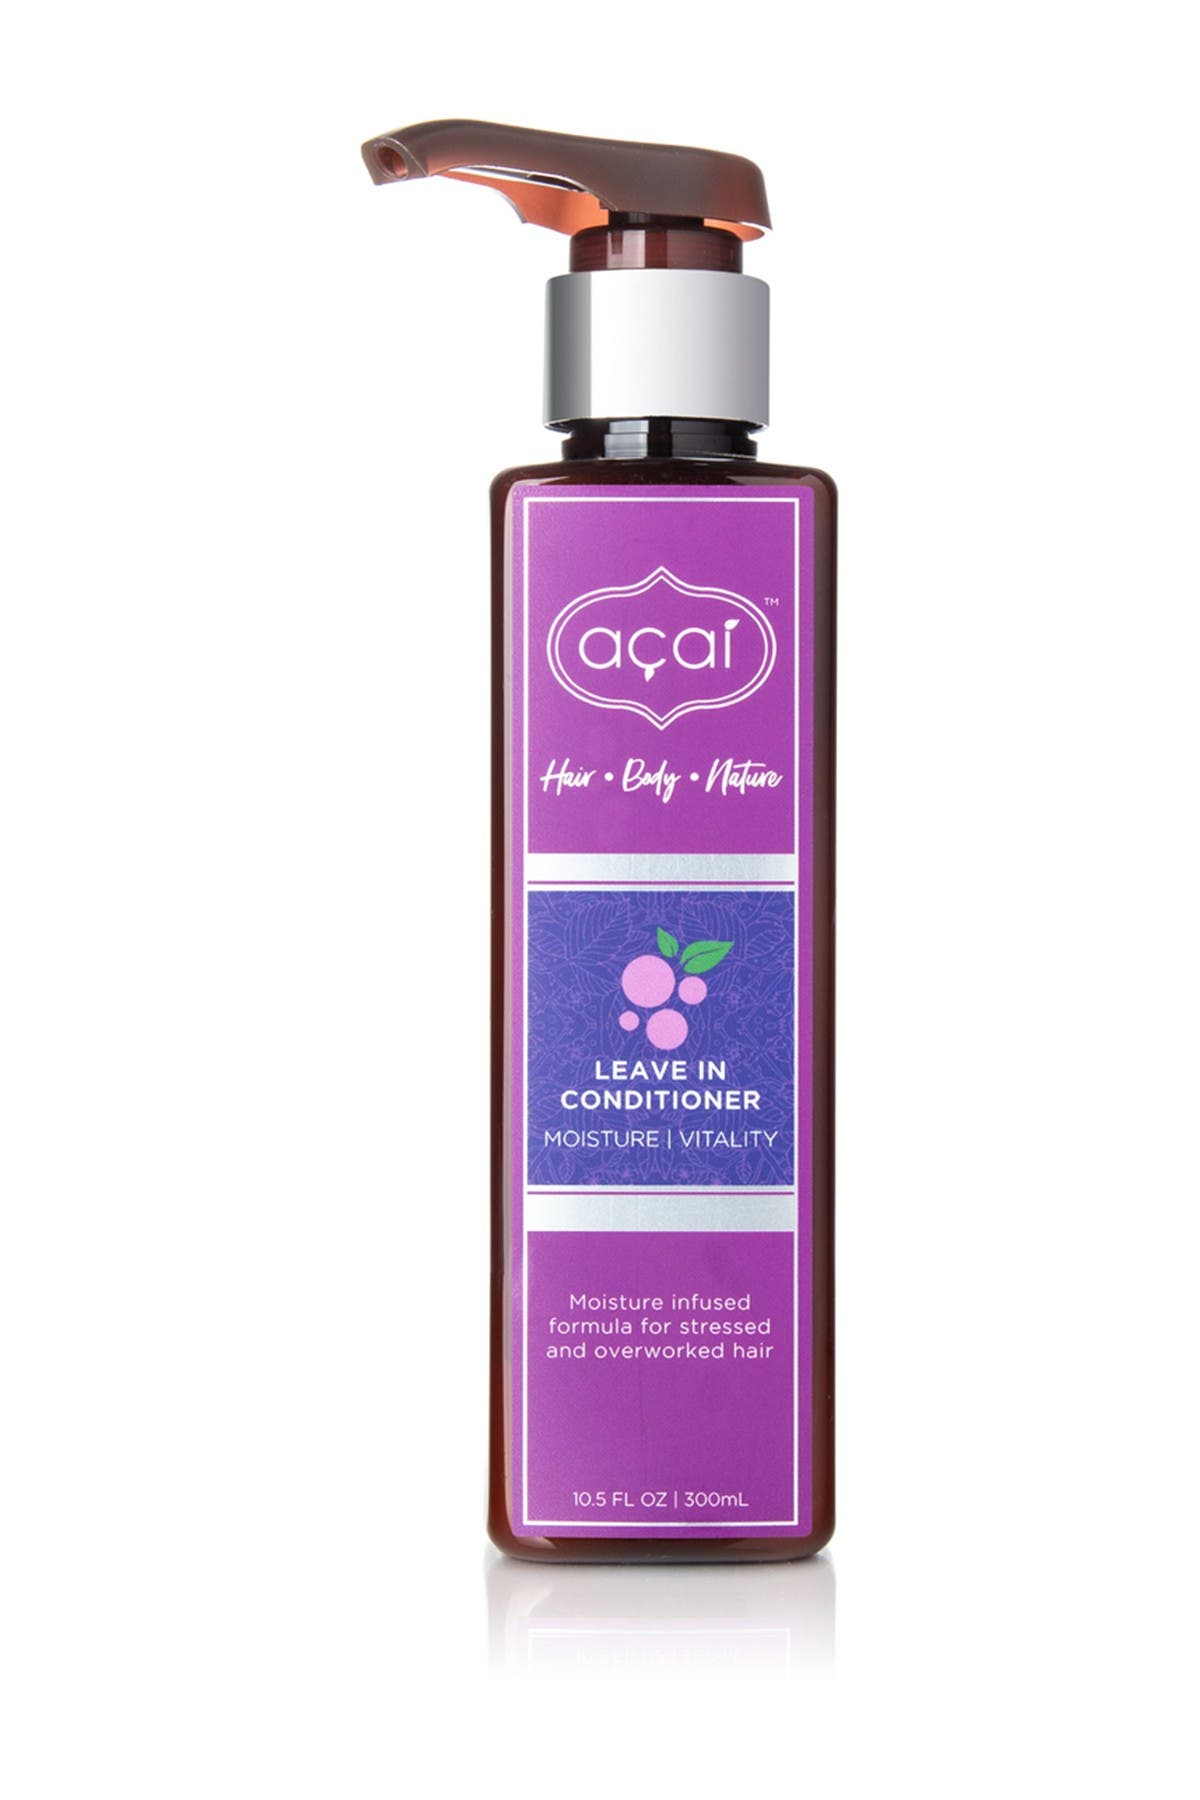 Image of ACAI Moisture Vitality Leave In Conditioner